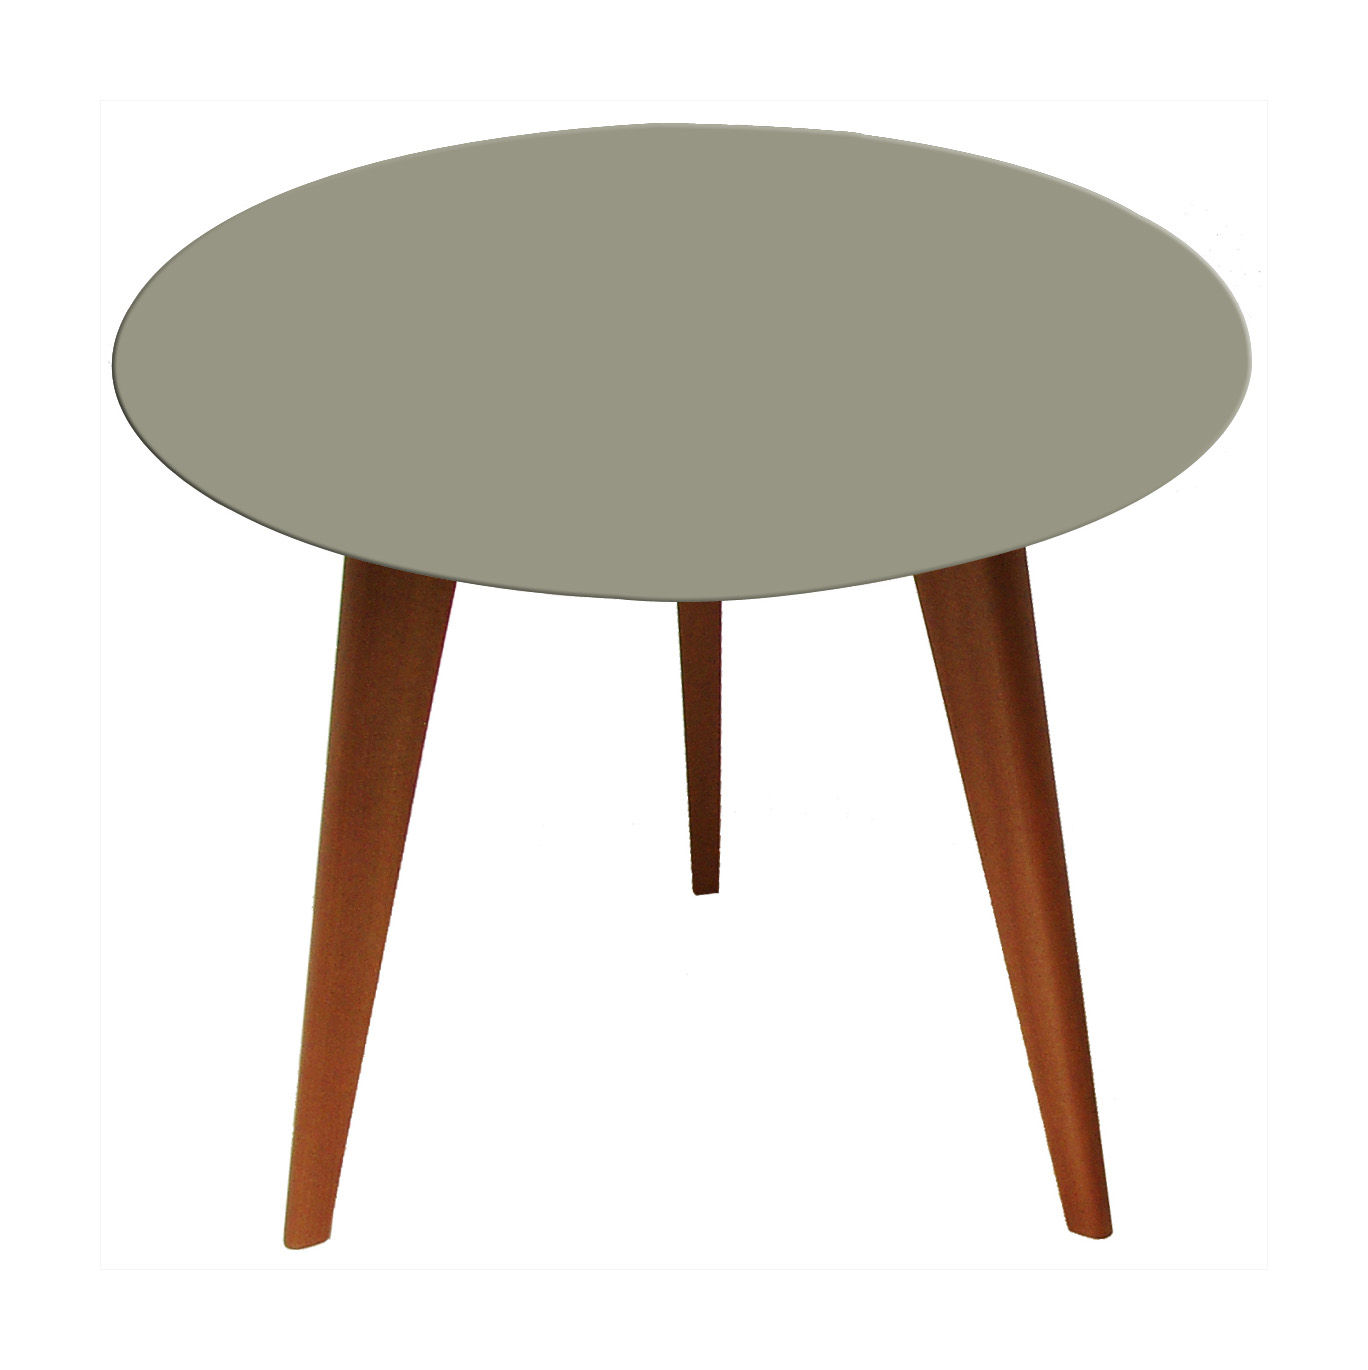 Lalinde ronde coffee table round small 45 cm grey top for Table ronde design 6 personnes